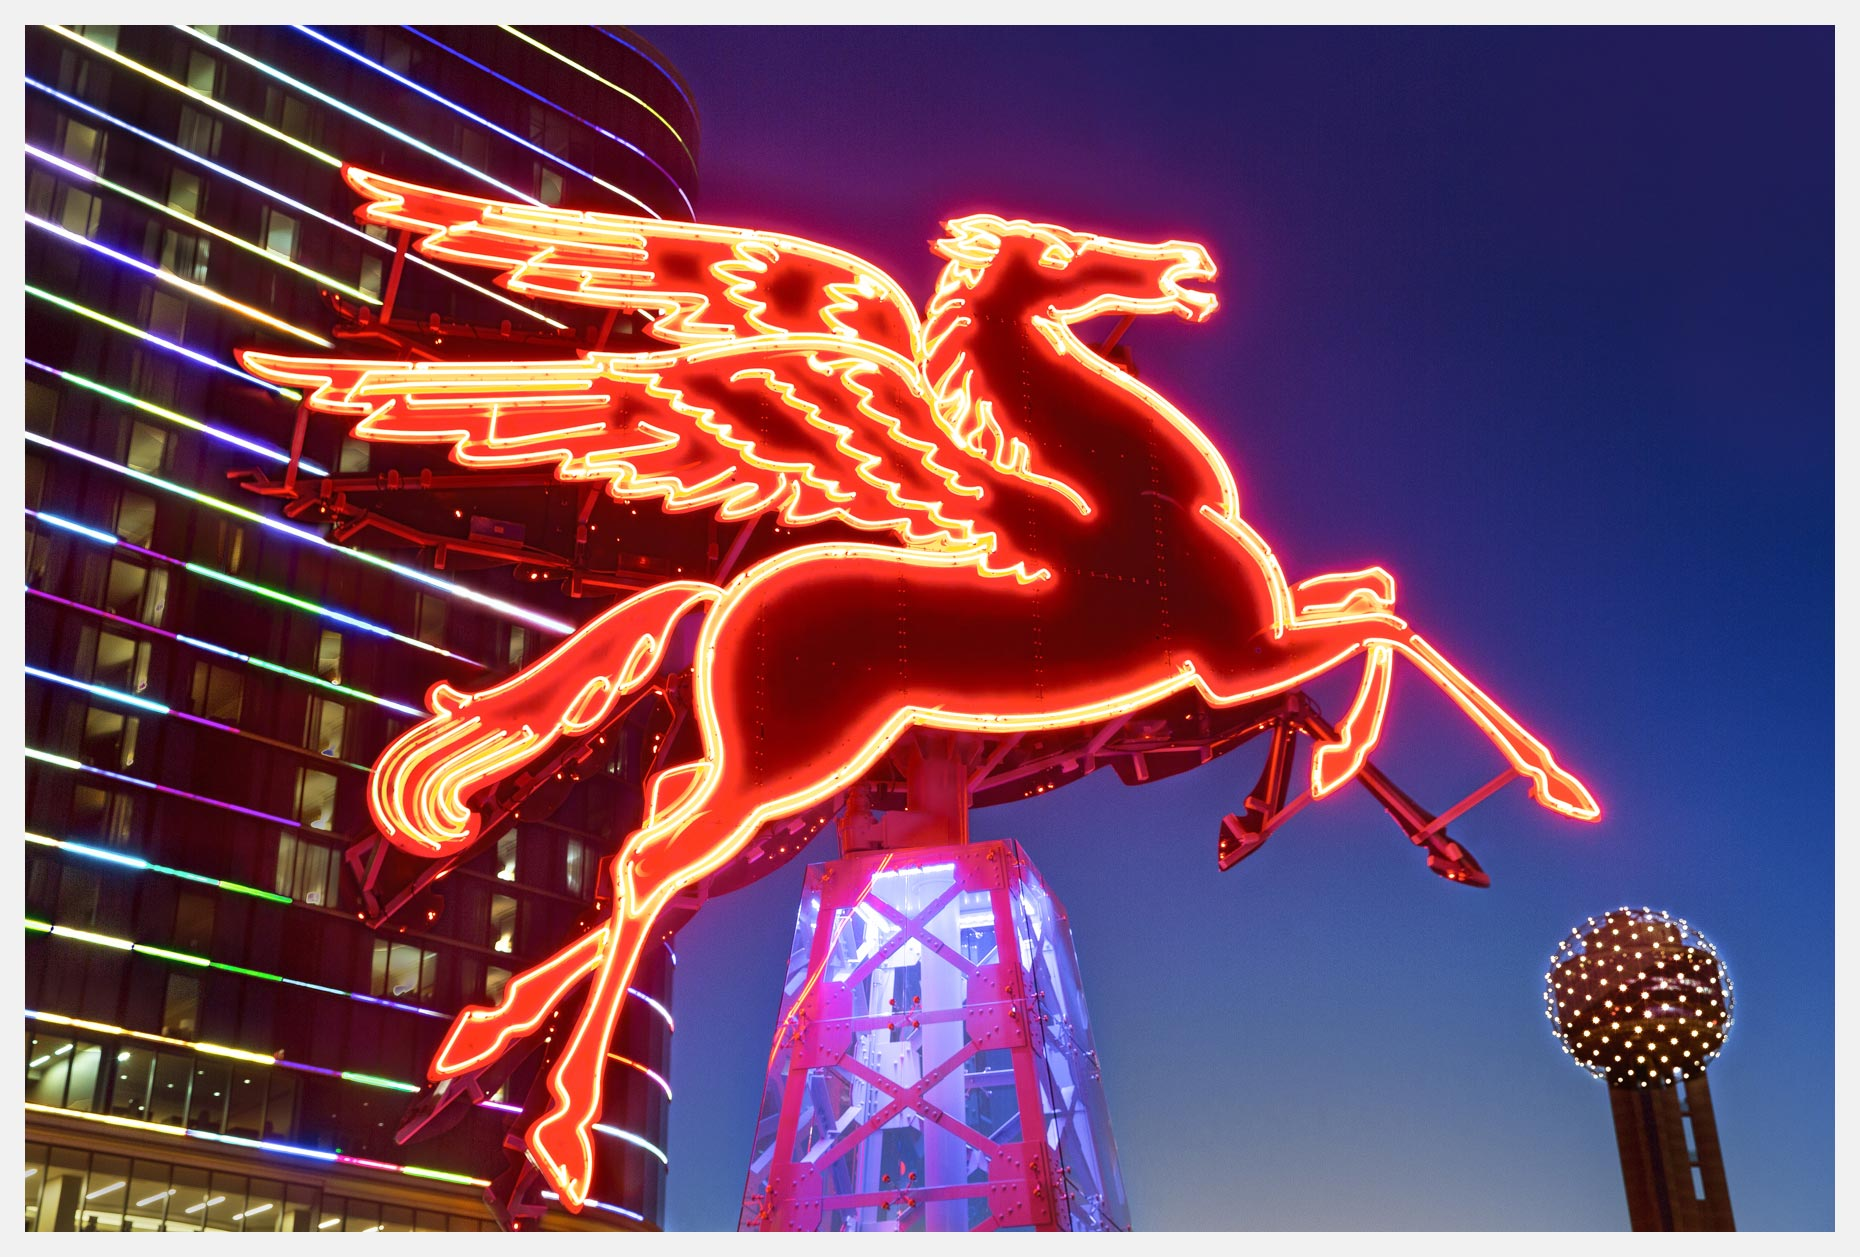 Pegasus Flying Red Horse Dallas Skyline Image